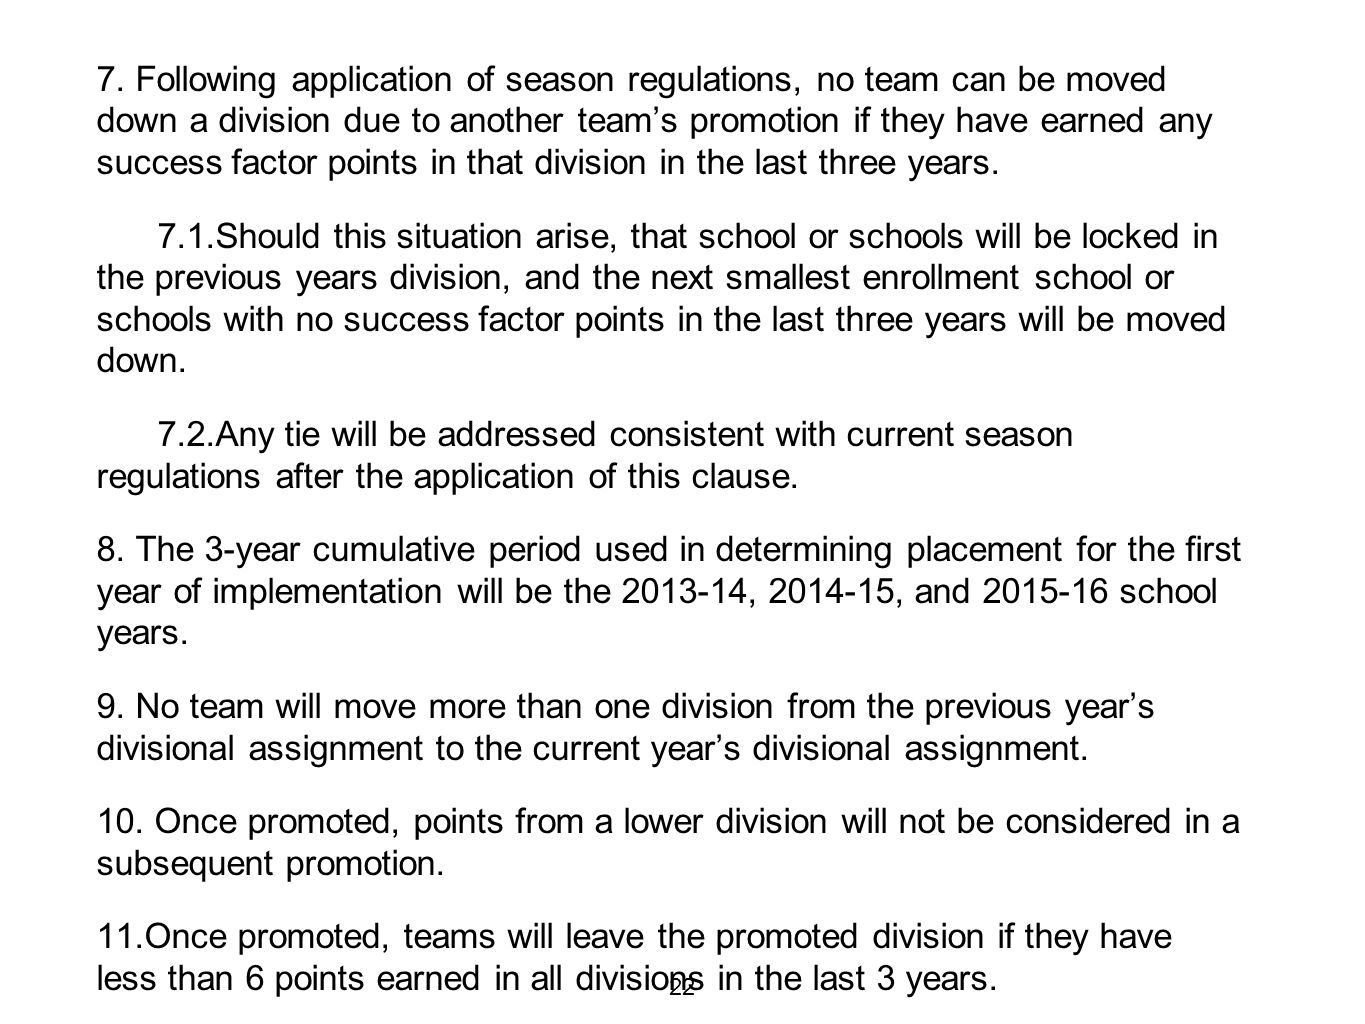 7. Following application of season regulations, no team can be moved down a division due to another team's promotion if they have earned any success f